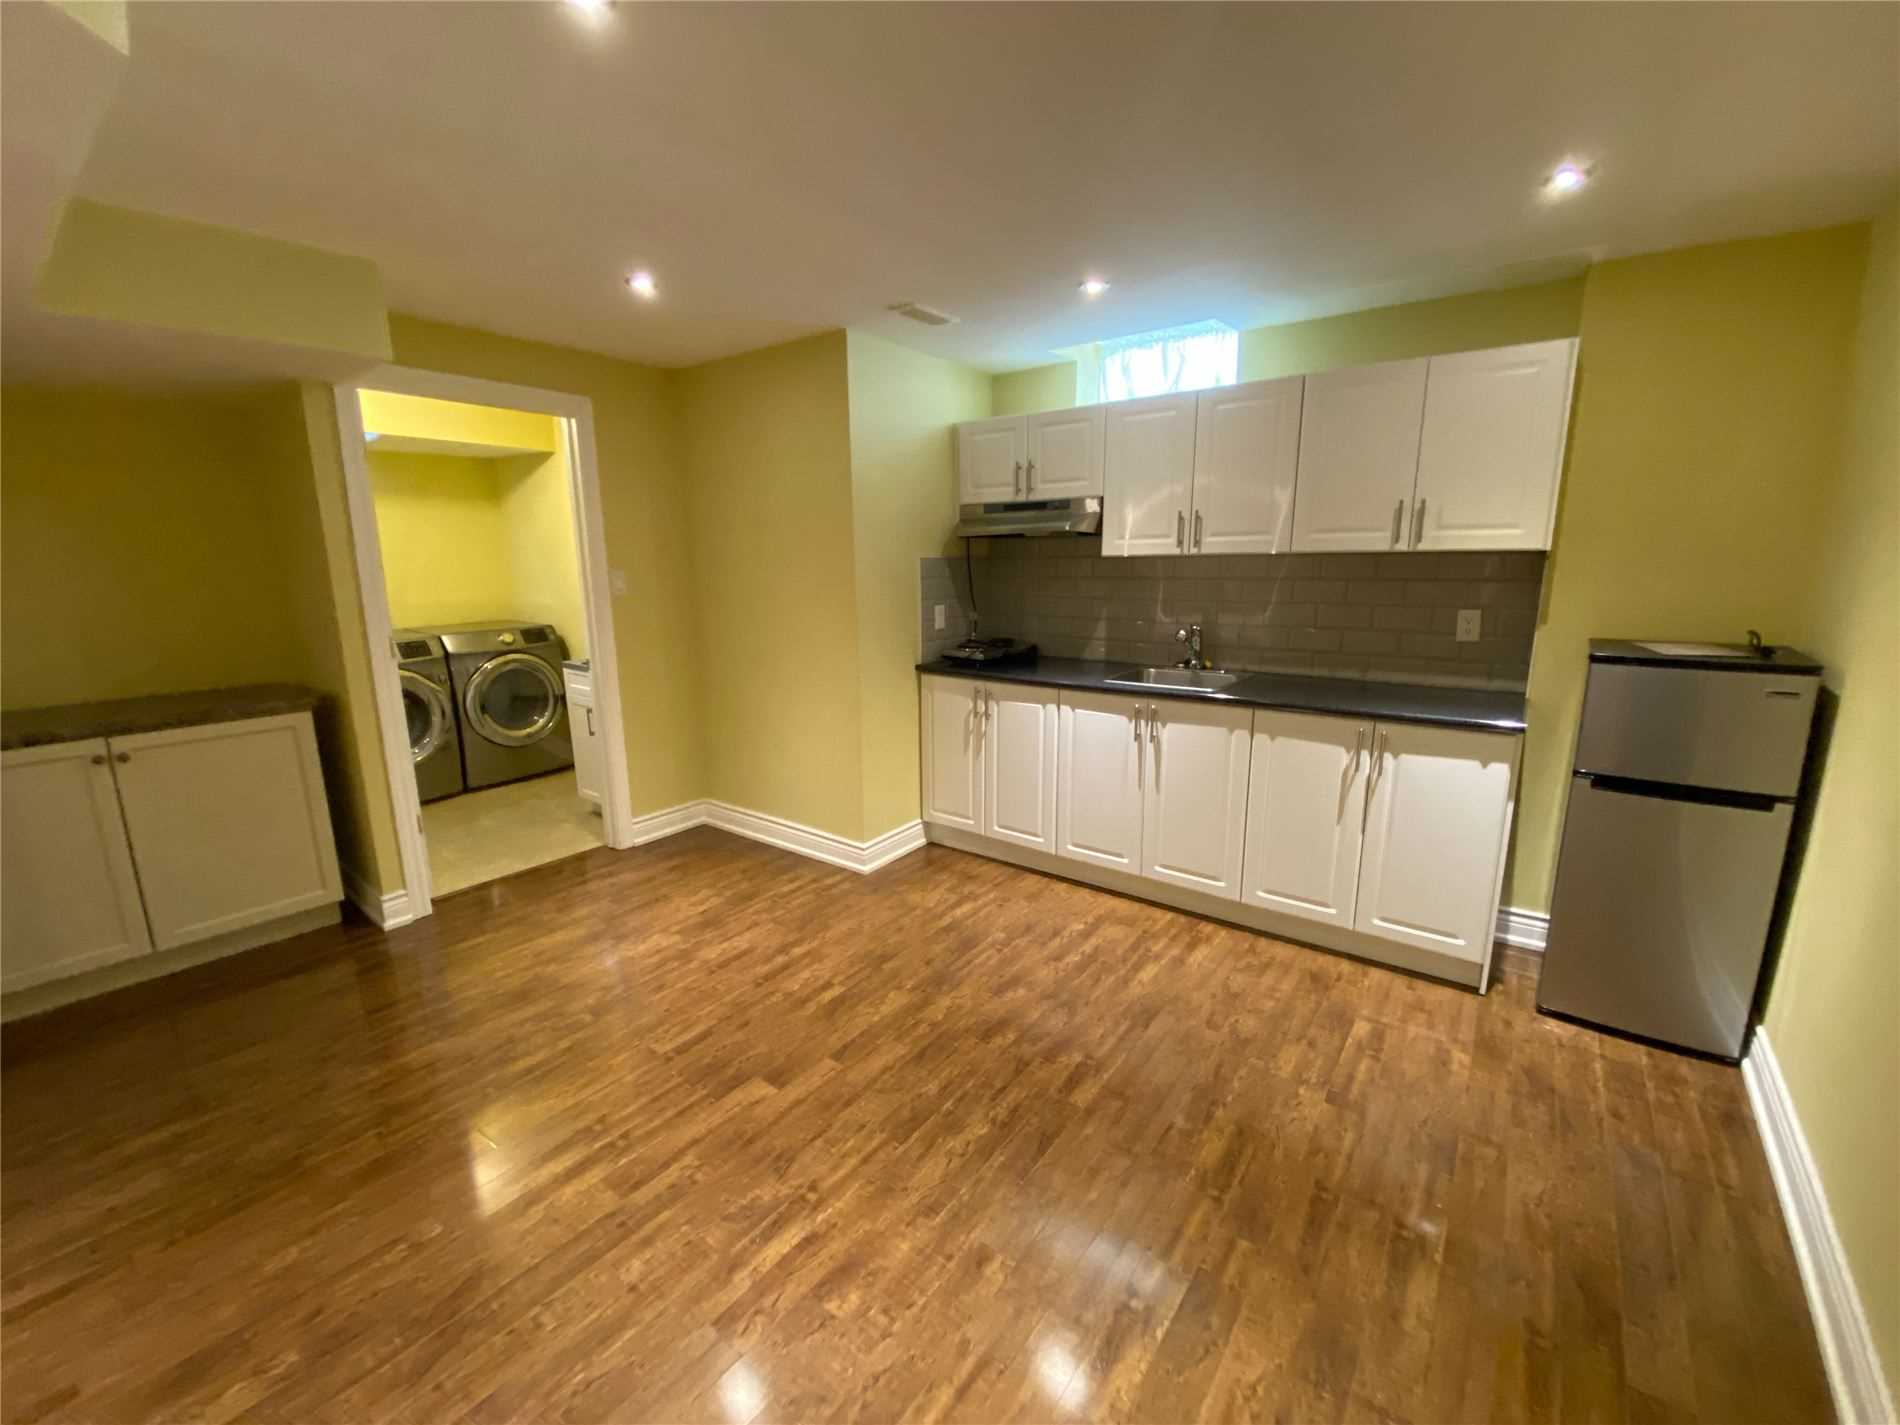 Image 2 of 8 showing inside of 0 Bedroom Semi-Detached Apartment for Lease at 2 Maroon Dr, Richmond Hill L4E5B4